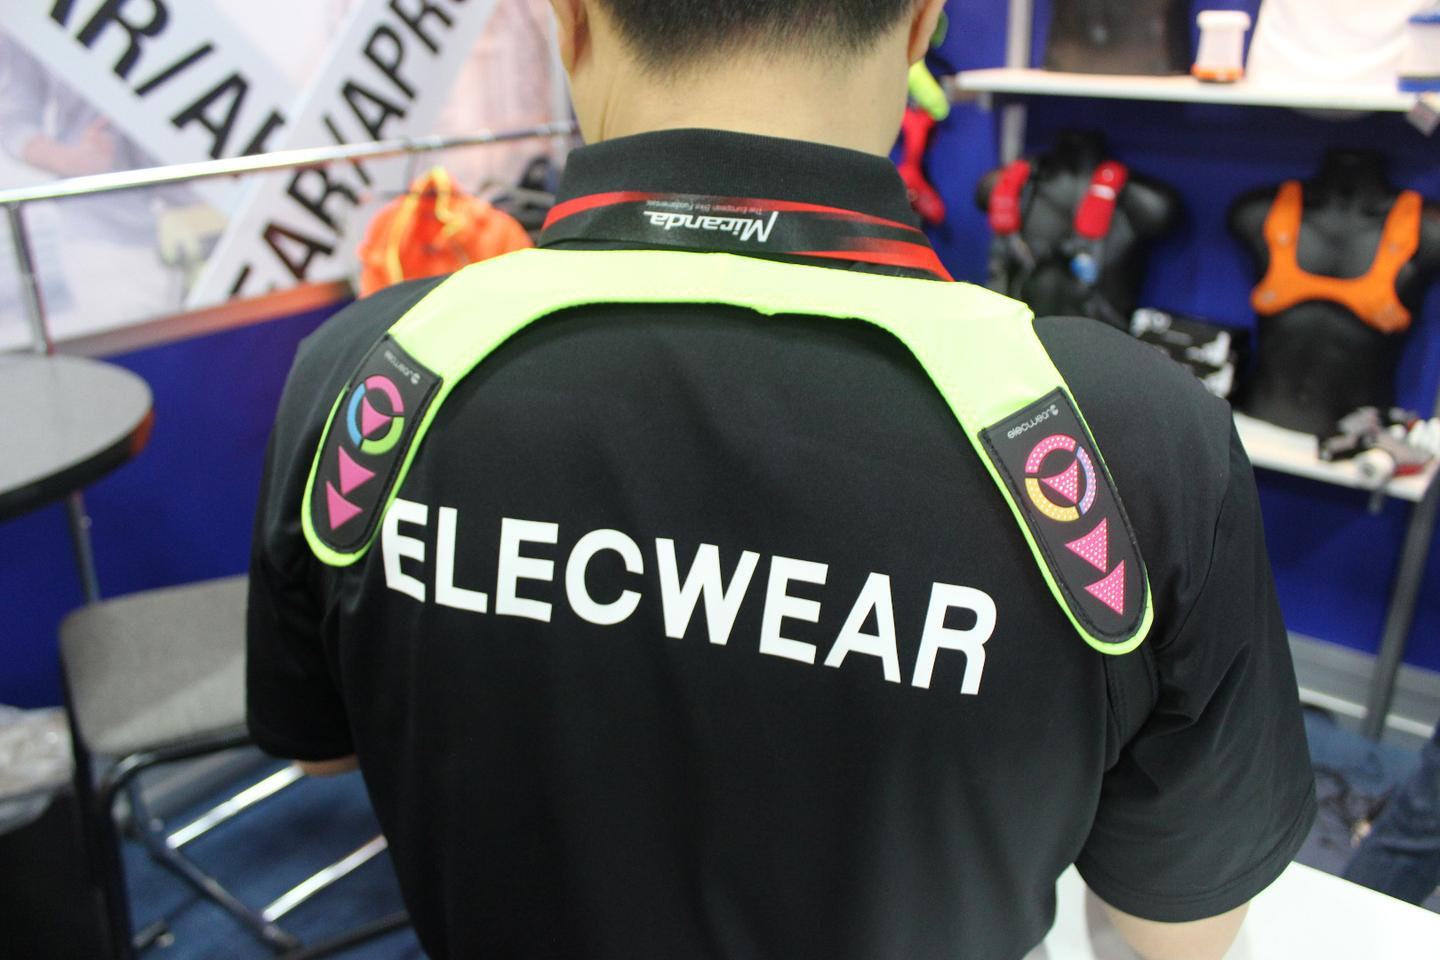 The Elecwear cycling vest, on display at Interbike 2015